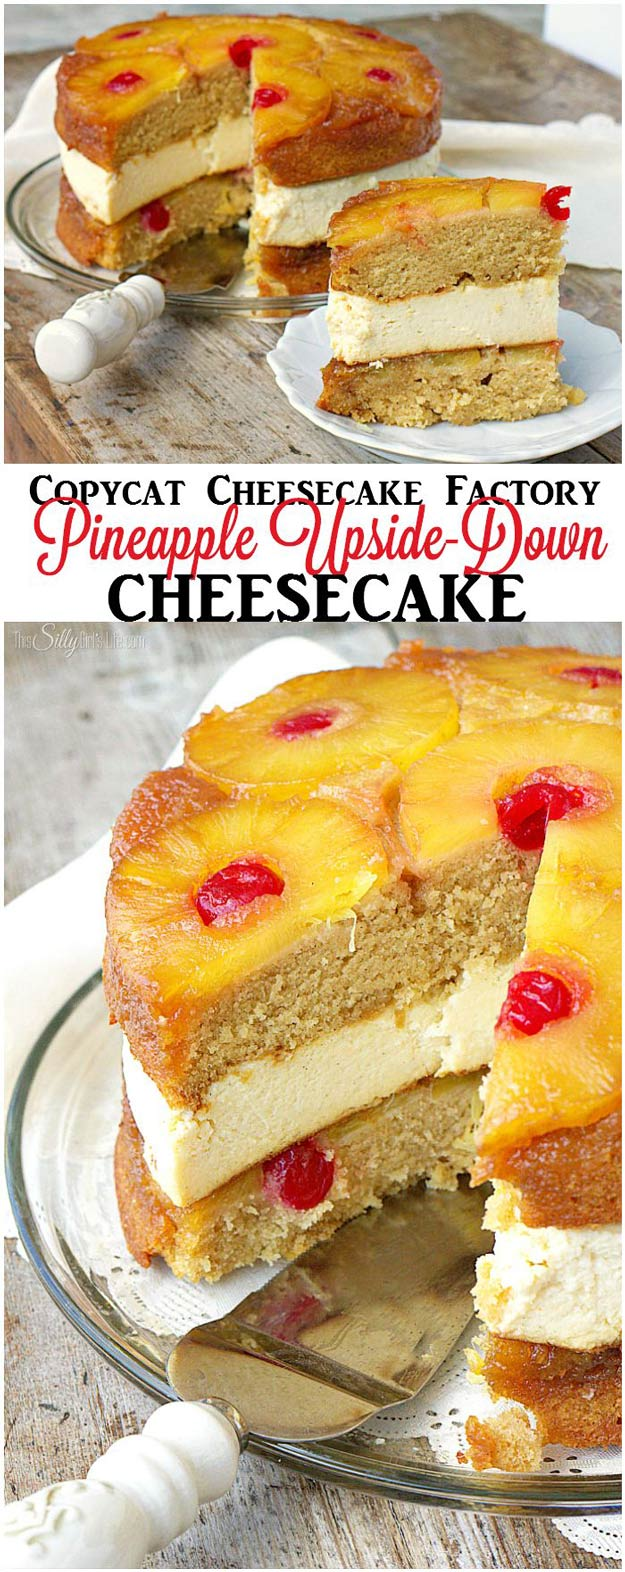 Copycat Recipes From Top Restaurants. Best Recipe Knockoffs from Chipotle, Starbucks, Olive Garden, Cinabbon, Cracker Barrel, Taco Bell, Cheesecake Factory, KFC, Mc Donalds, Red Lobster, Panda Express | Copycat Cheesecake Factory Pineapple Upside-Down Cheesecake | #recipes #copycatrecipes